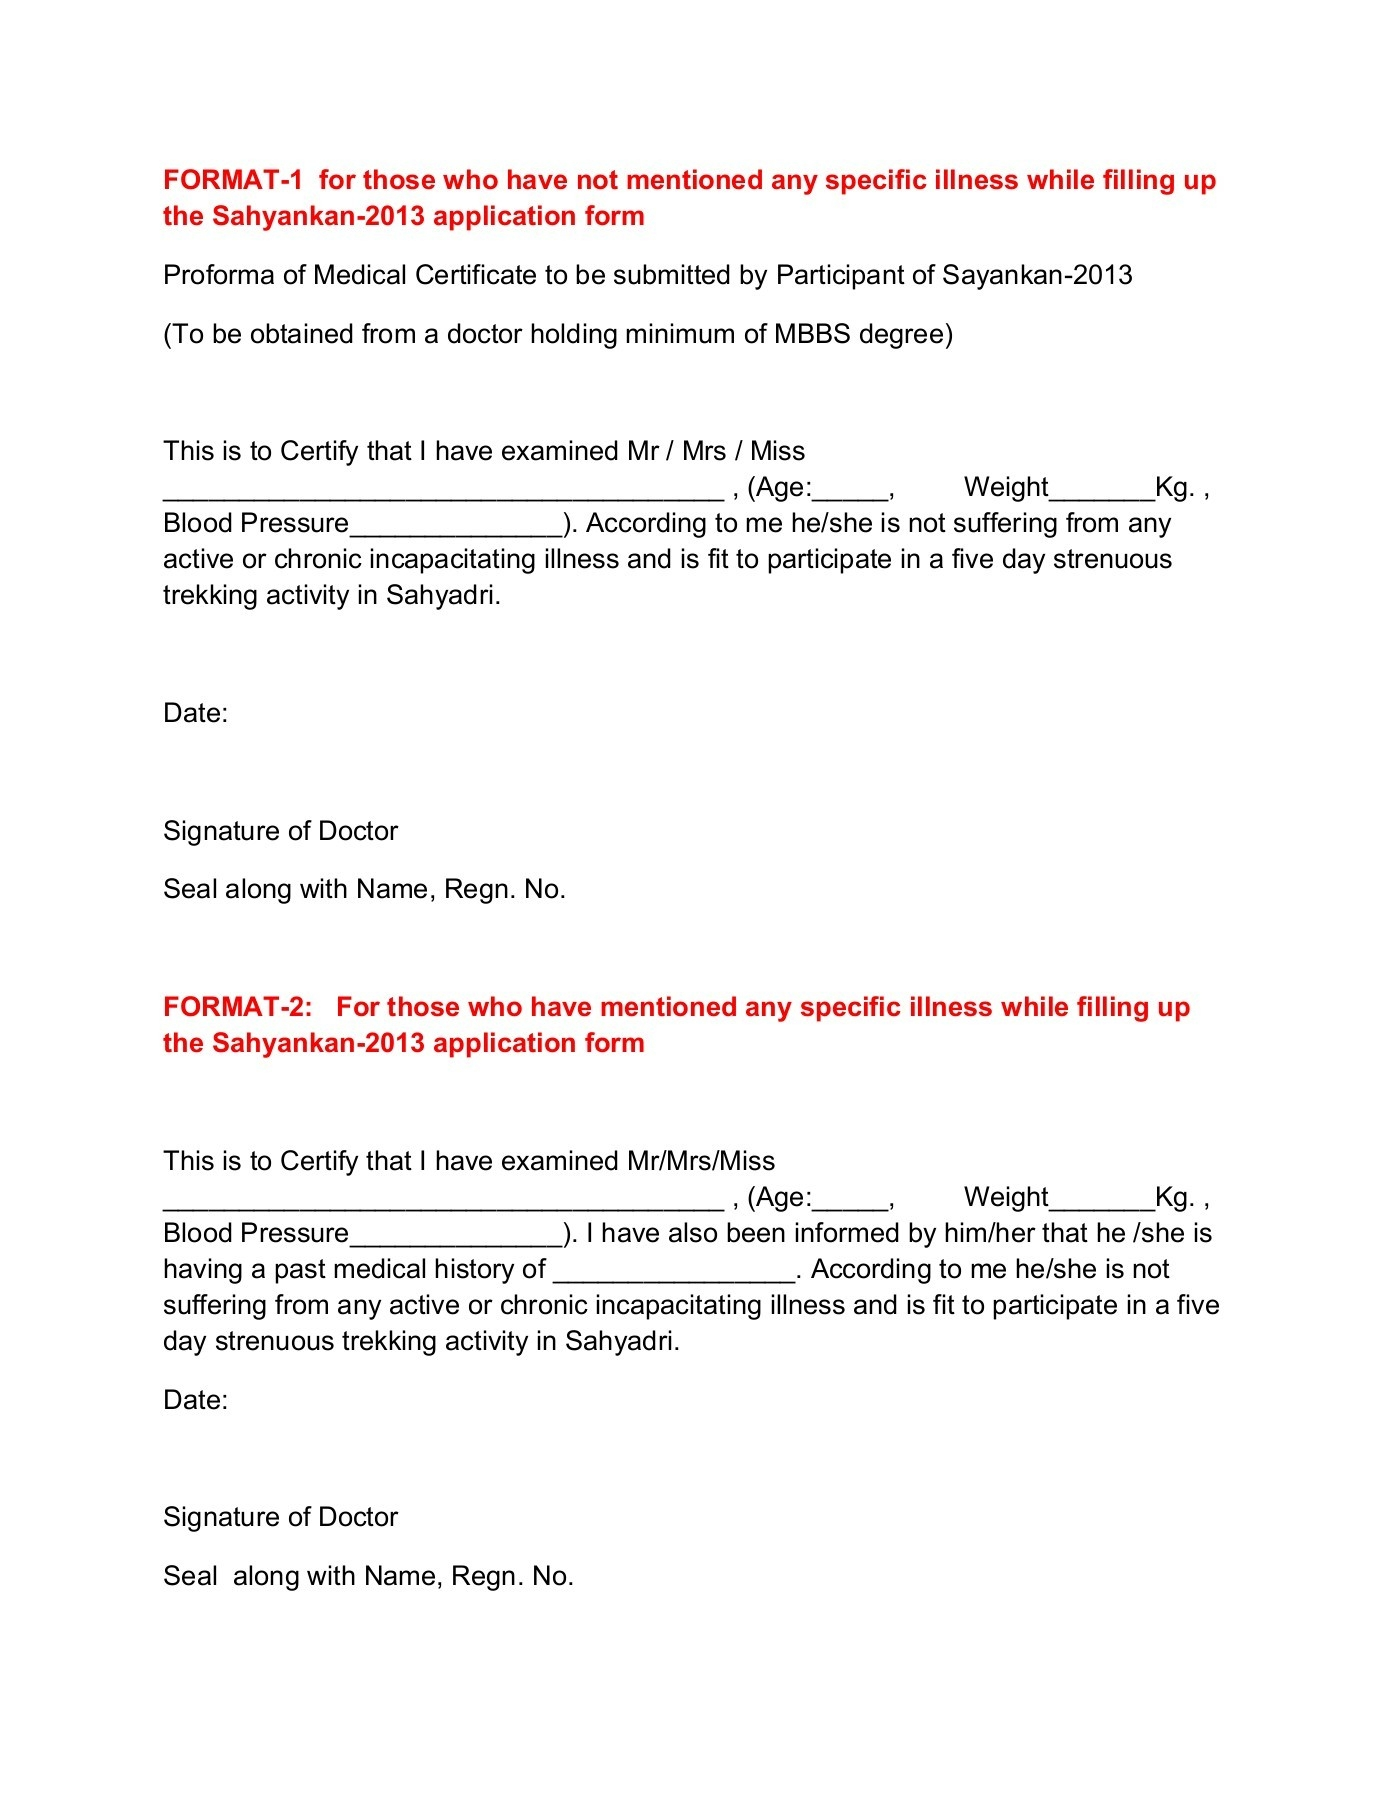 dear please find attached herewith soft copy of proforma please find the attached